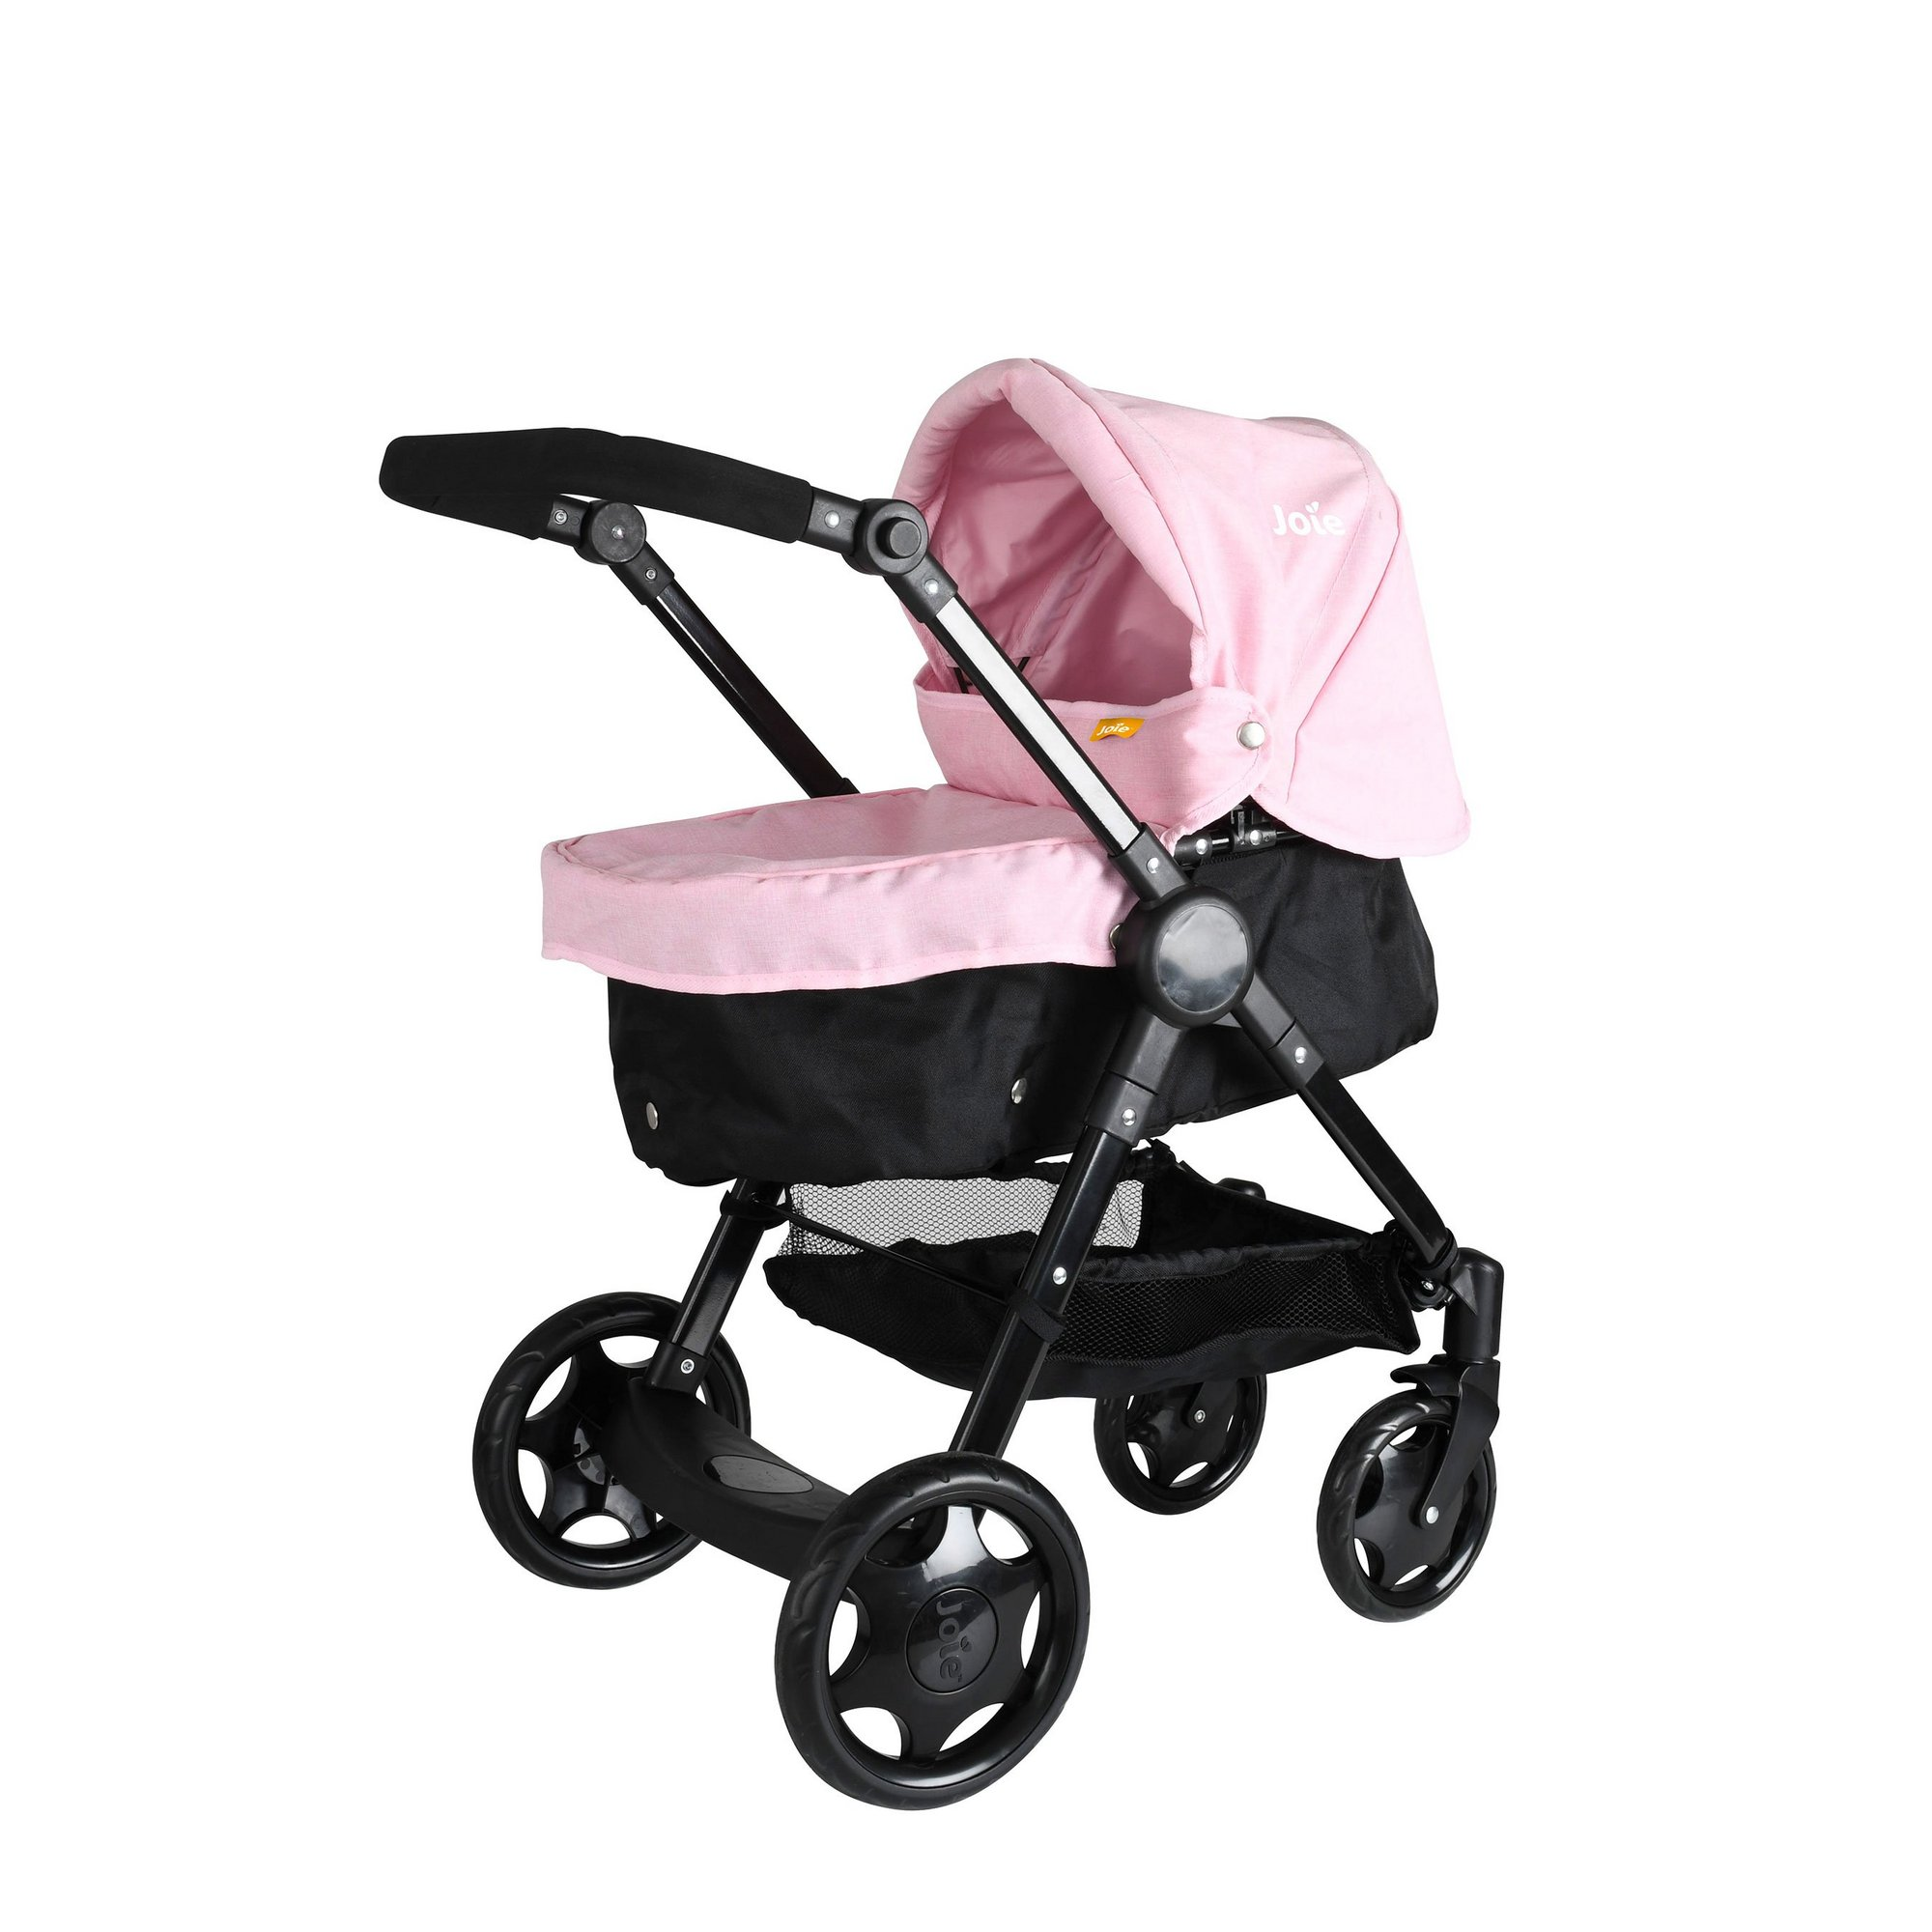 Image of Joie Junior Litetrax Travel System